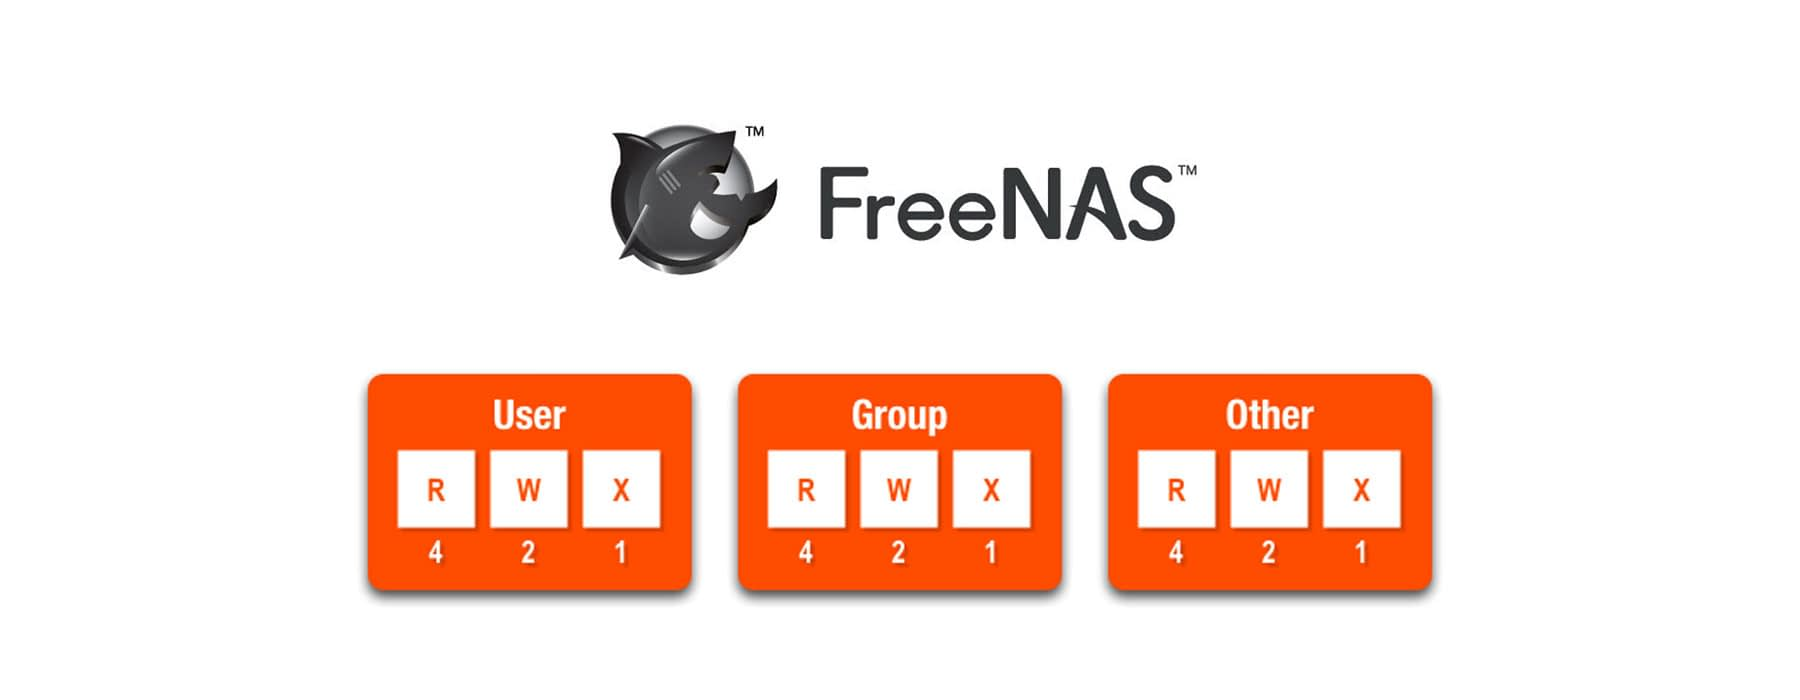 Creating permissions & users on FreeNAS